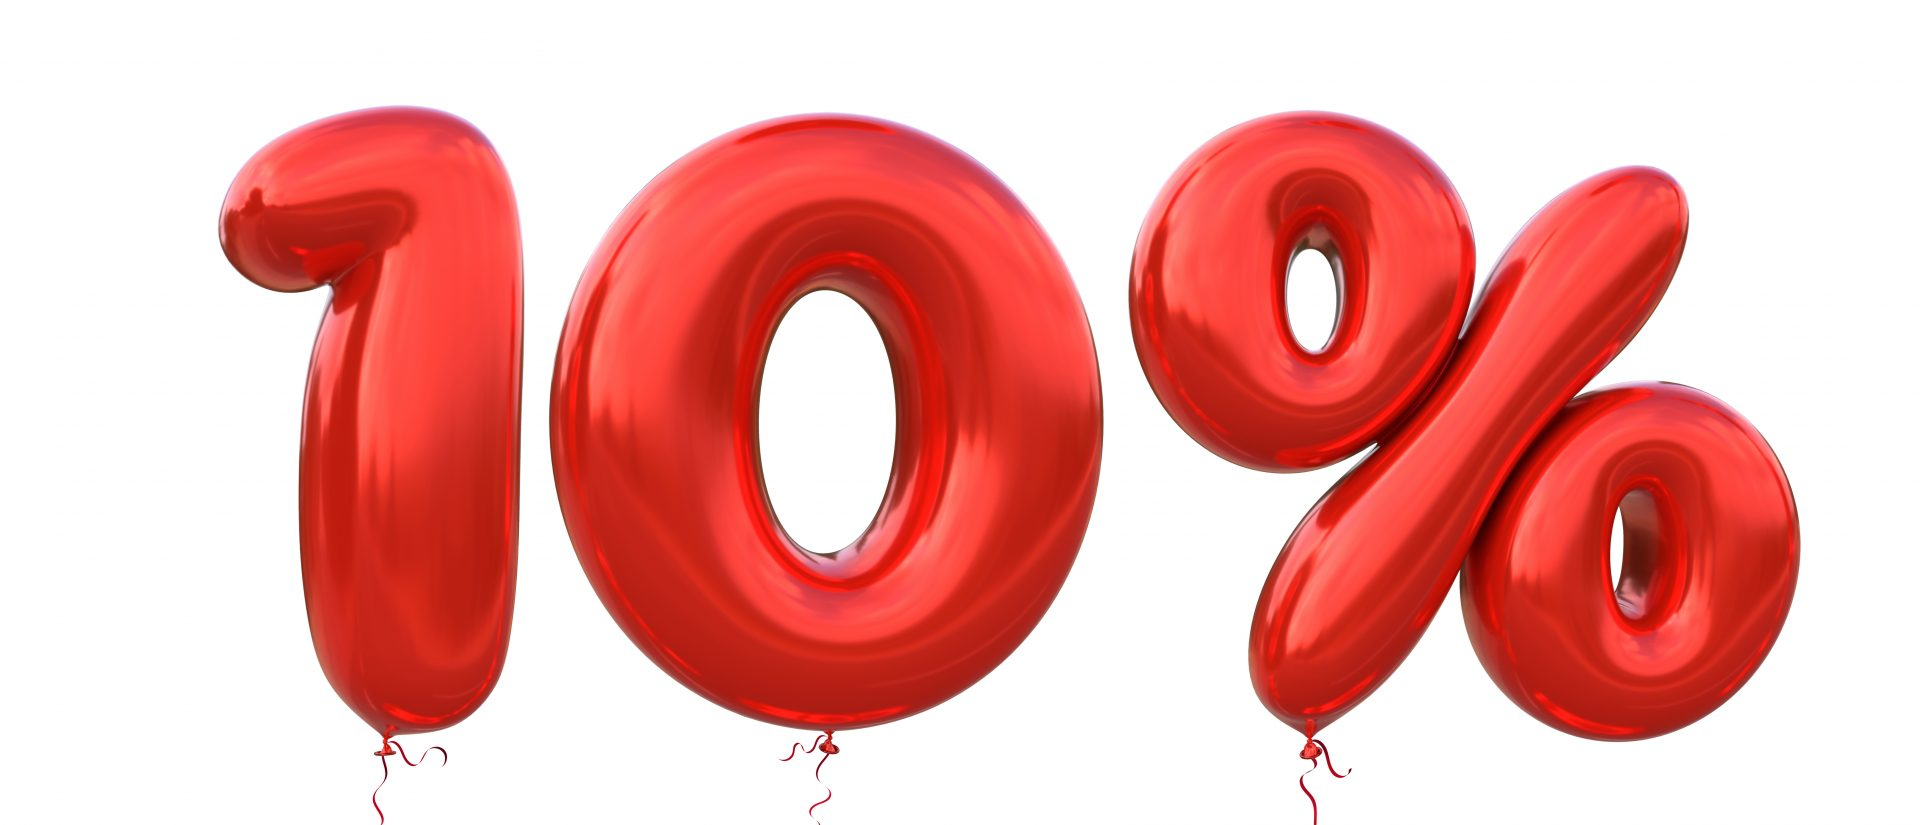 An illustration of red balloons showing 10%